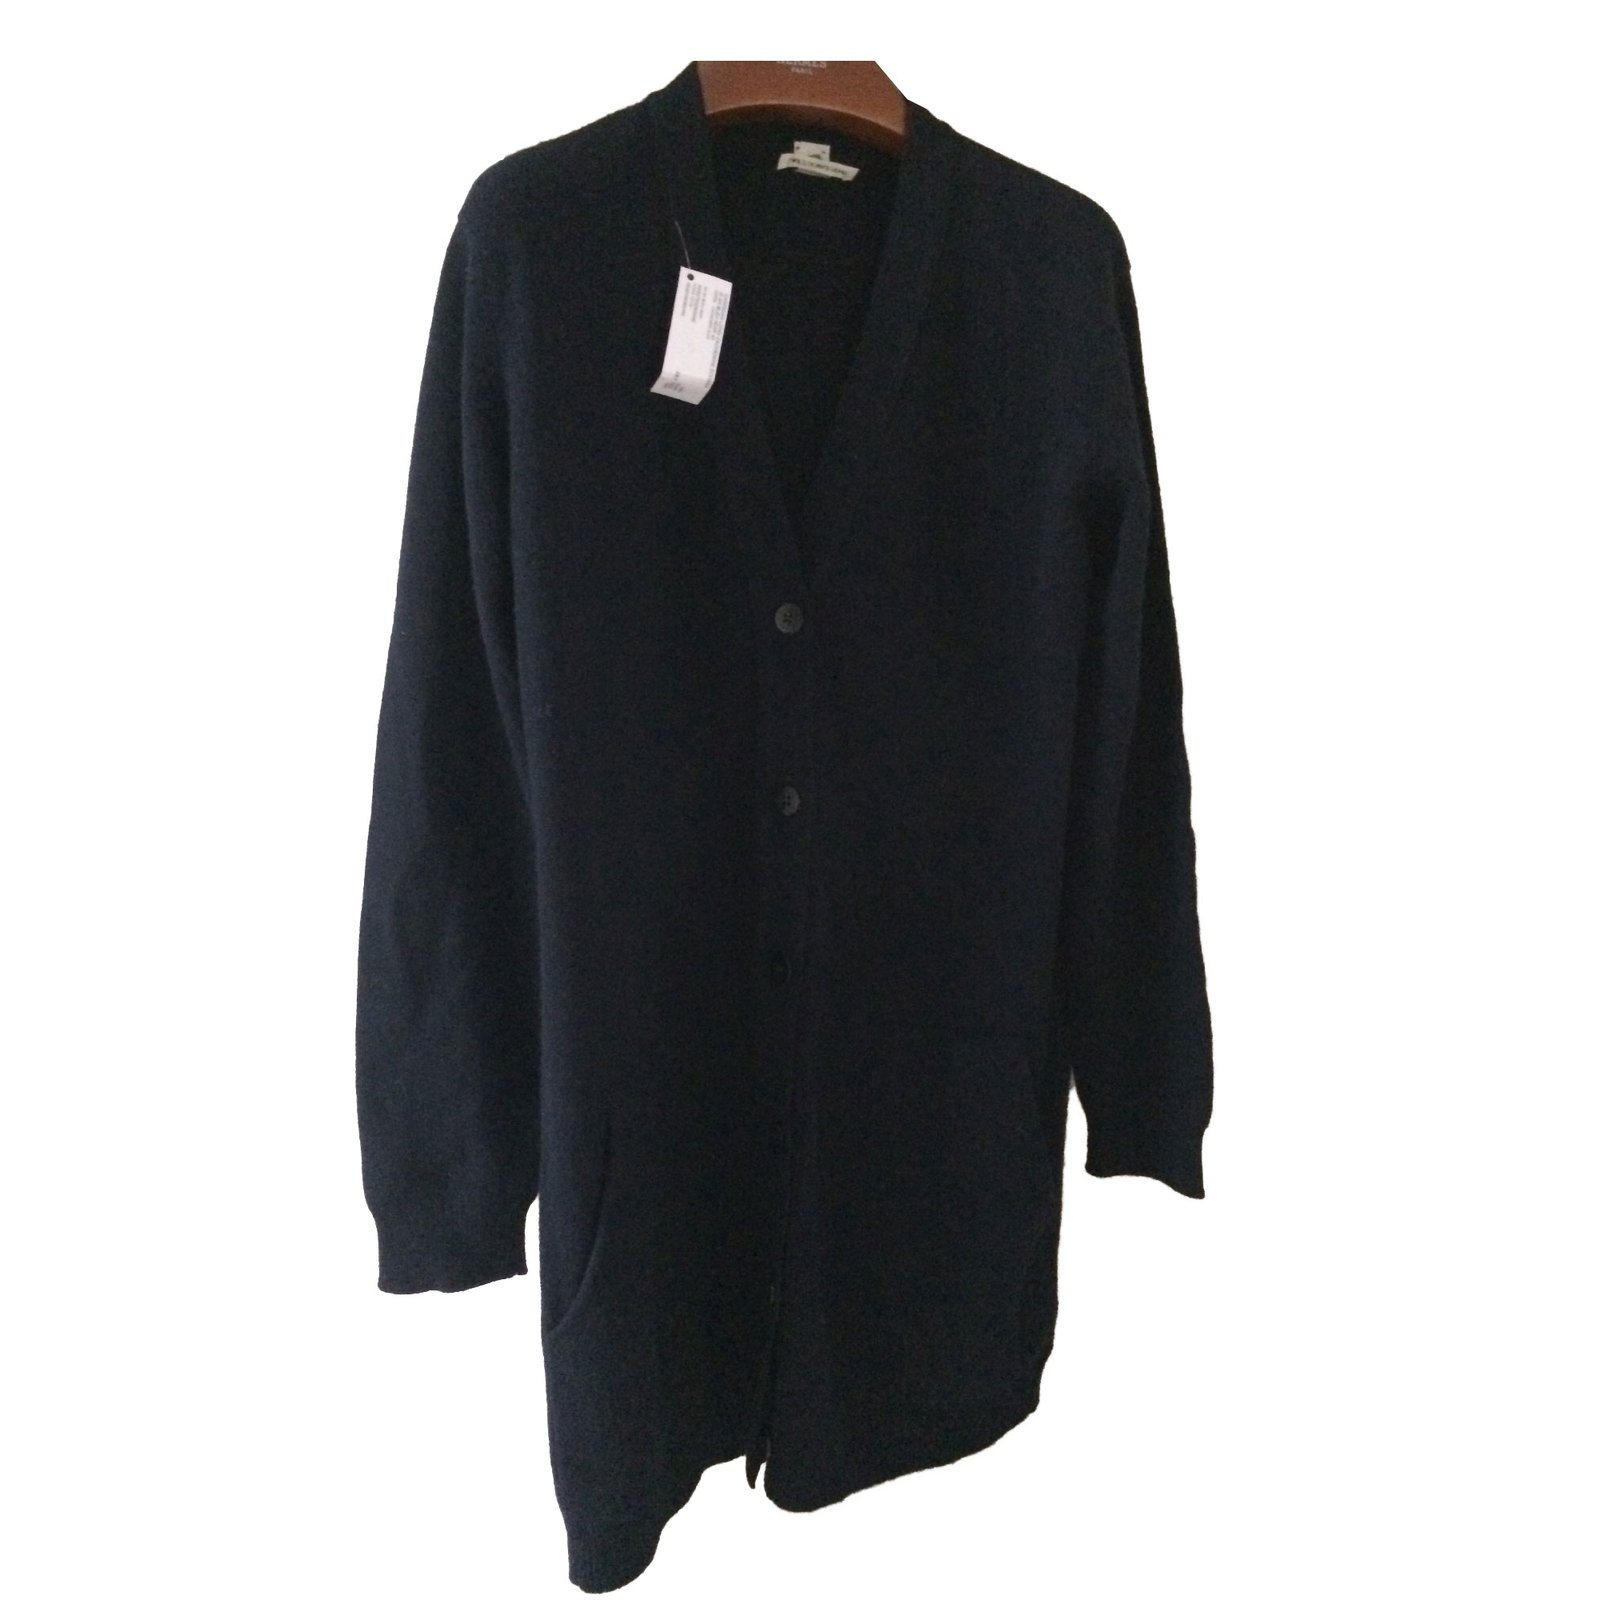 Hermès Long cardigan sweater in cashmere Knitwear Cashmere Navy ...